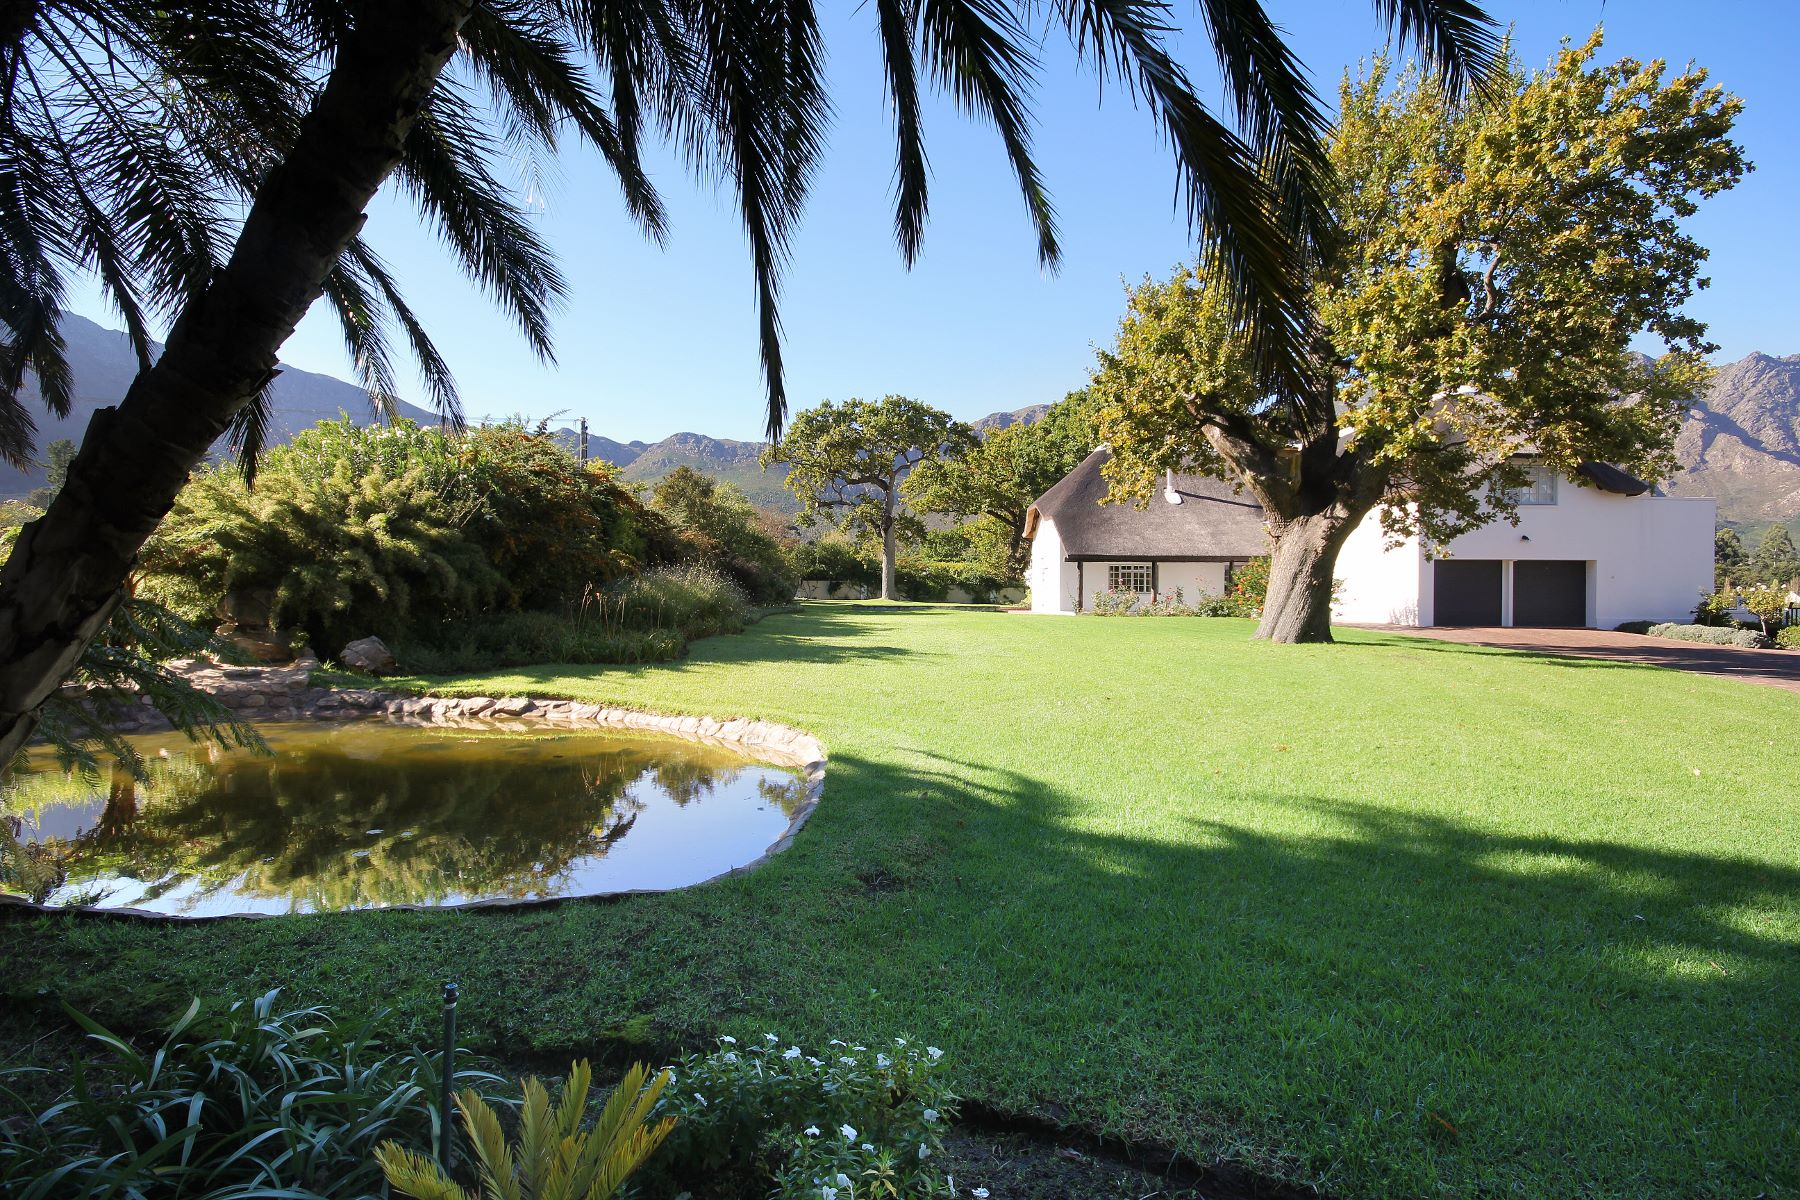 Single Family Home for Sale at Franschhoek Franschhoek, Western Cape, 7690 South Africa